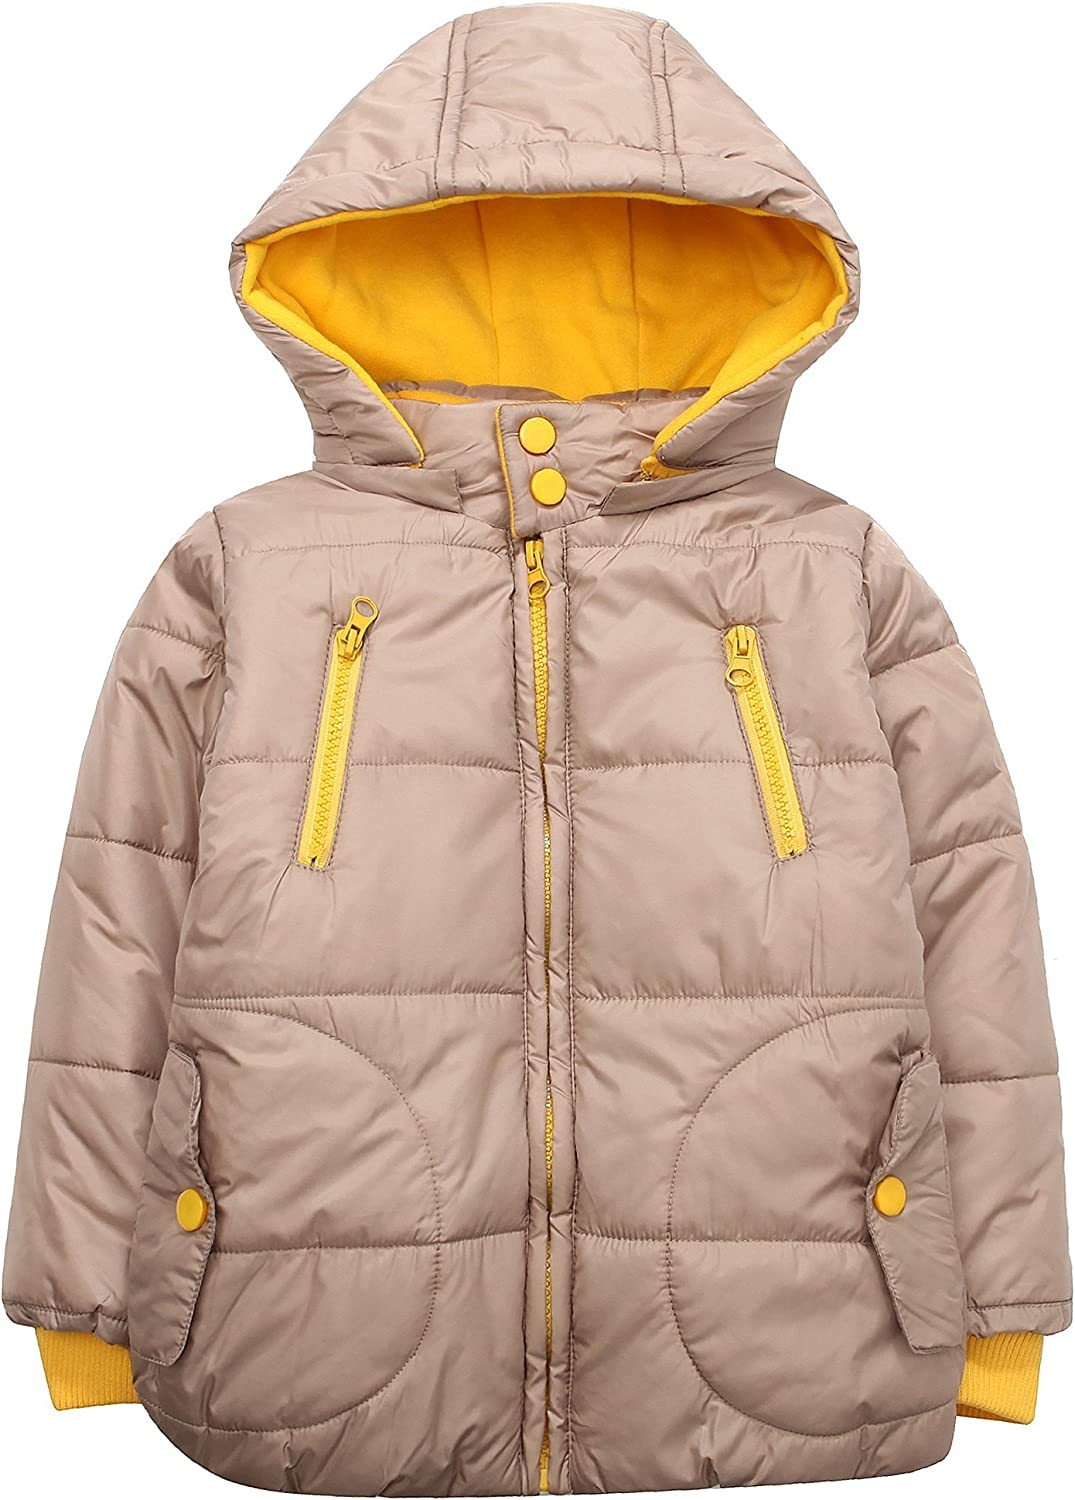 5% OFF Richie House Little Boys' Padding Detachable 35% OFF with Jacket Hood